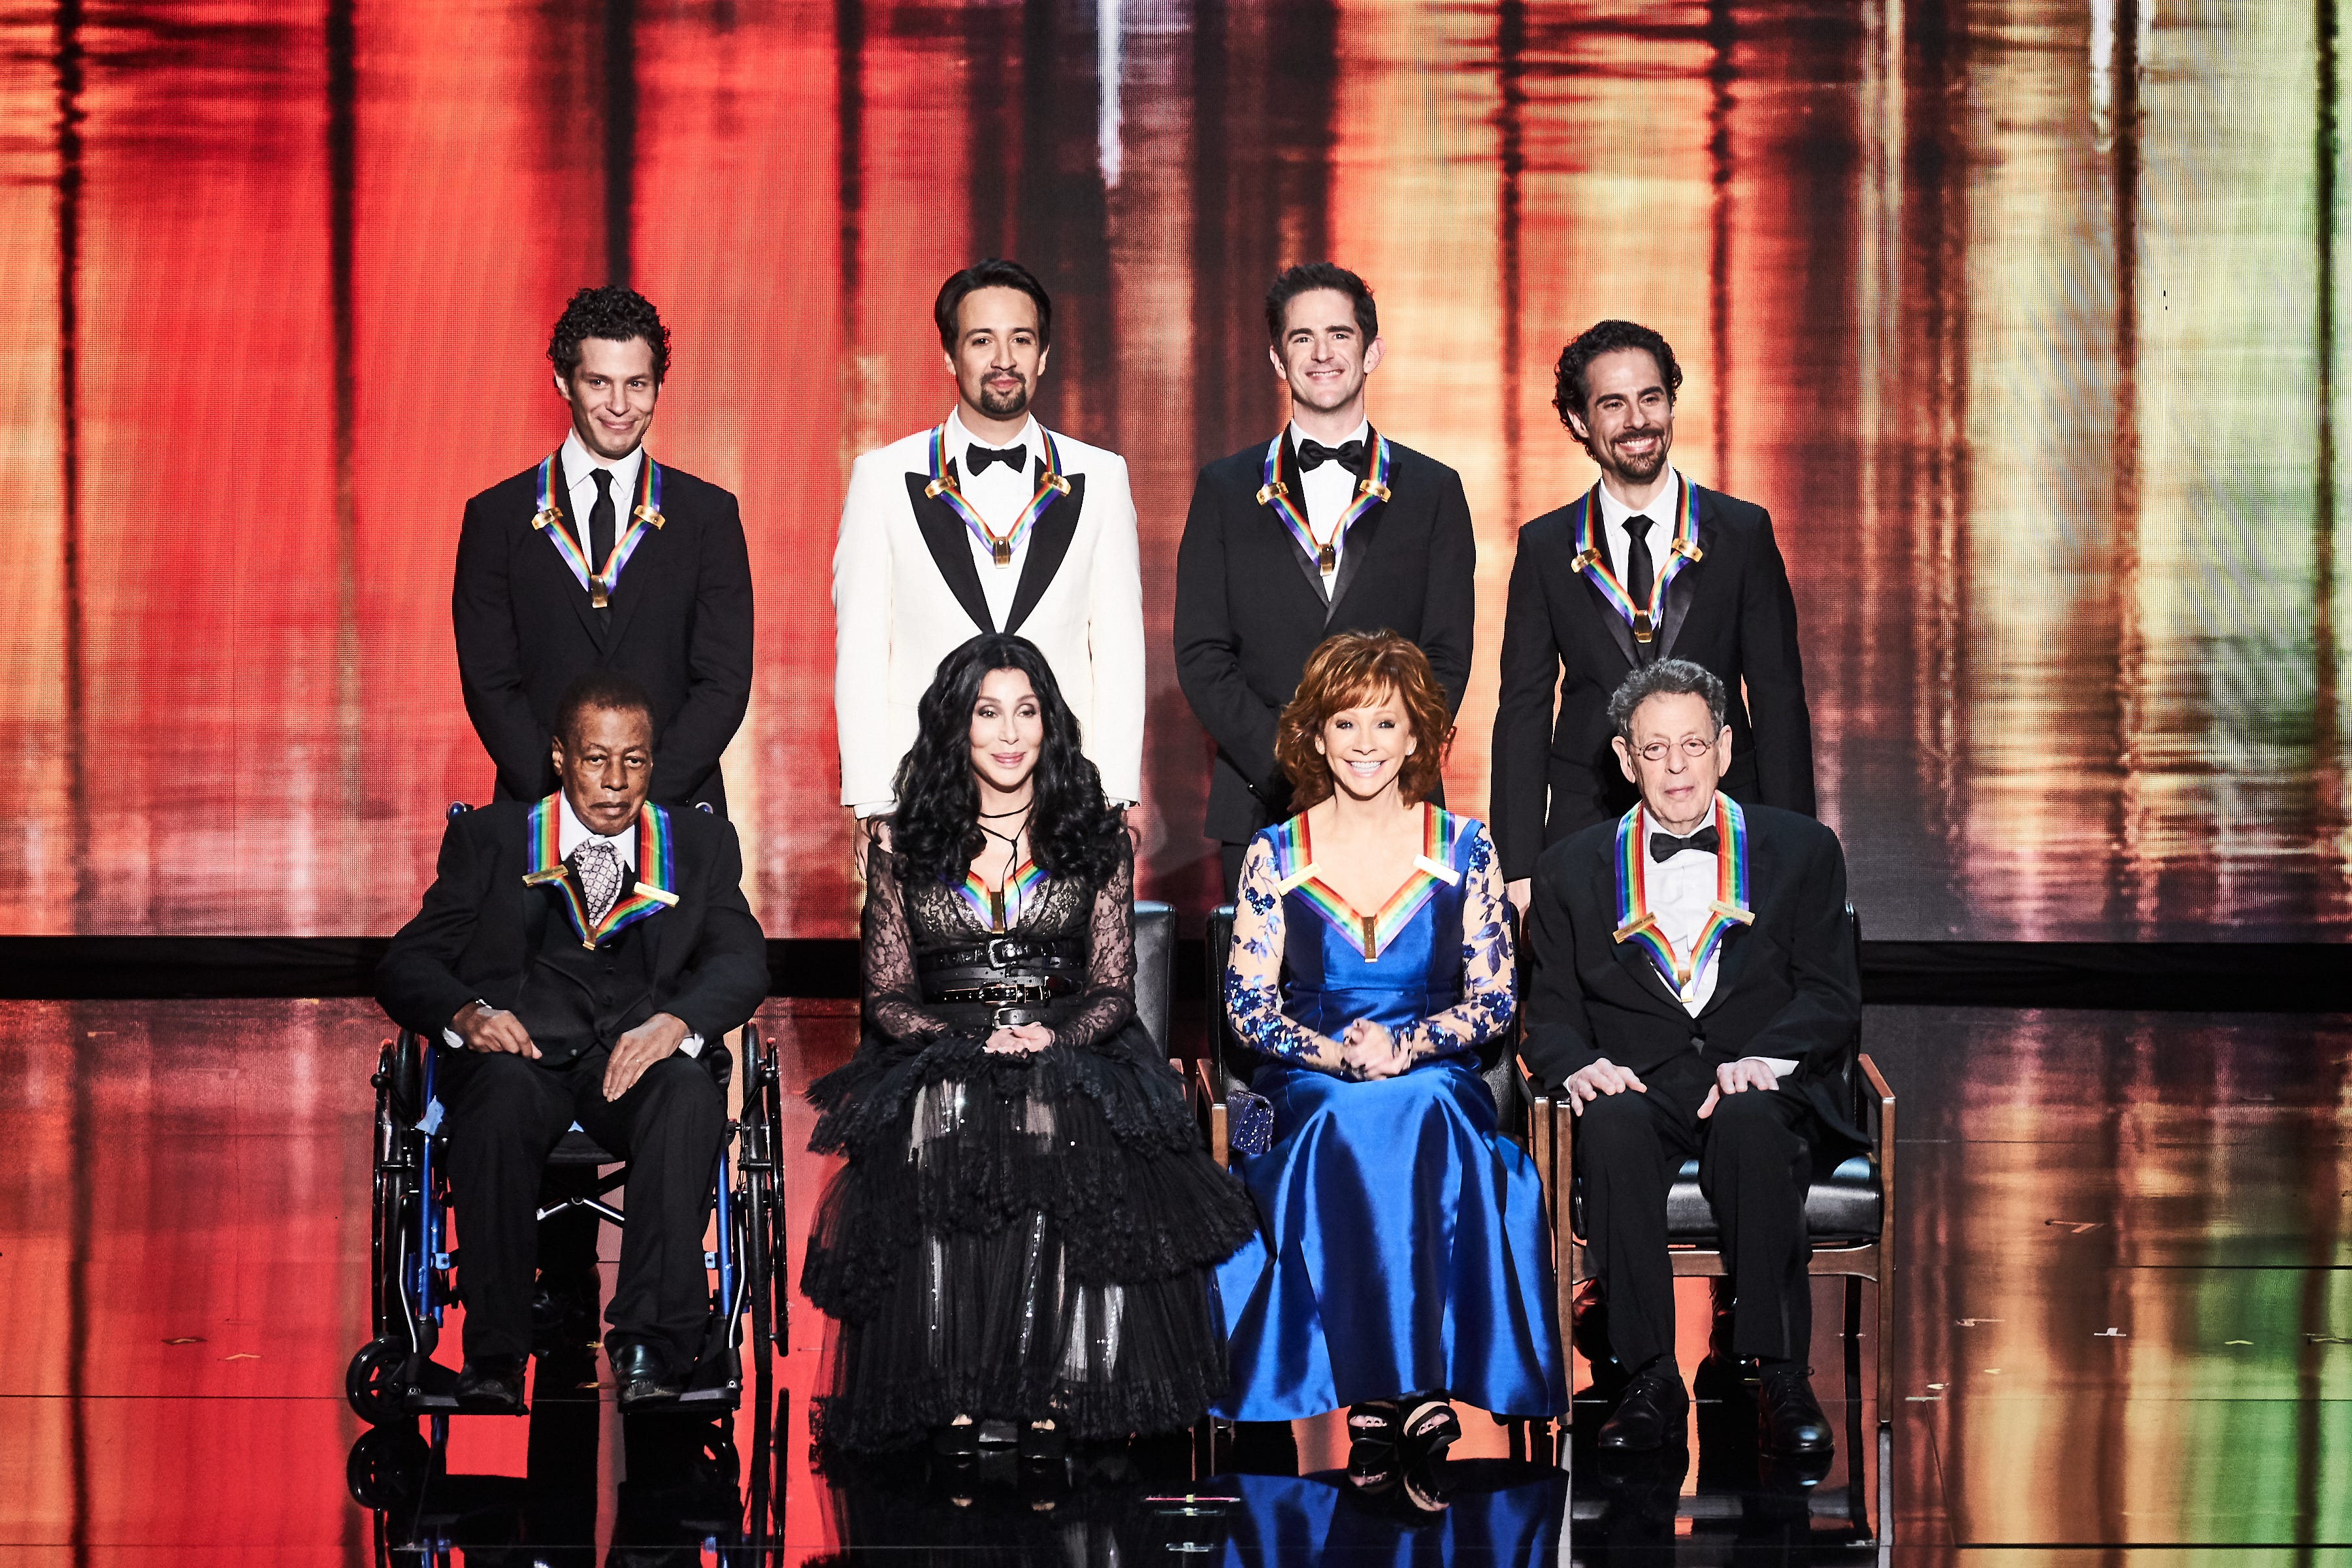 Kennedy Center Honorees for 2018: (Back row, left to right) Thomas Kail, Lin-Manuel Miranda, Andy Blankenbuehler and Alex Lacamoire, (front row, left to right) Wayne Shorter, Cher, Reba McEntire and Philip Glass.